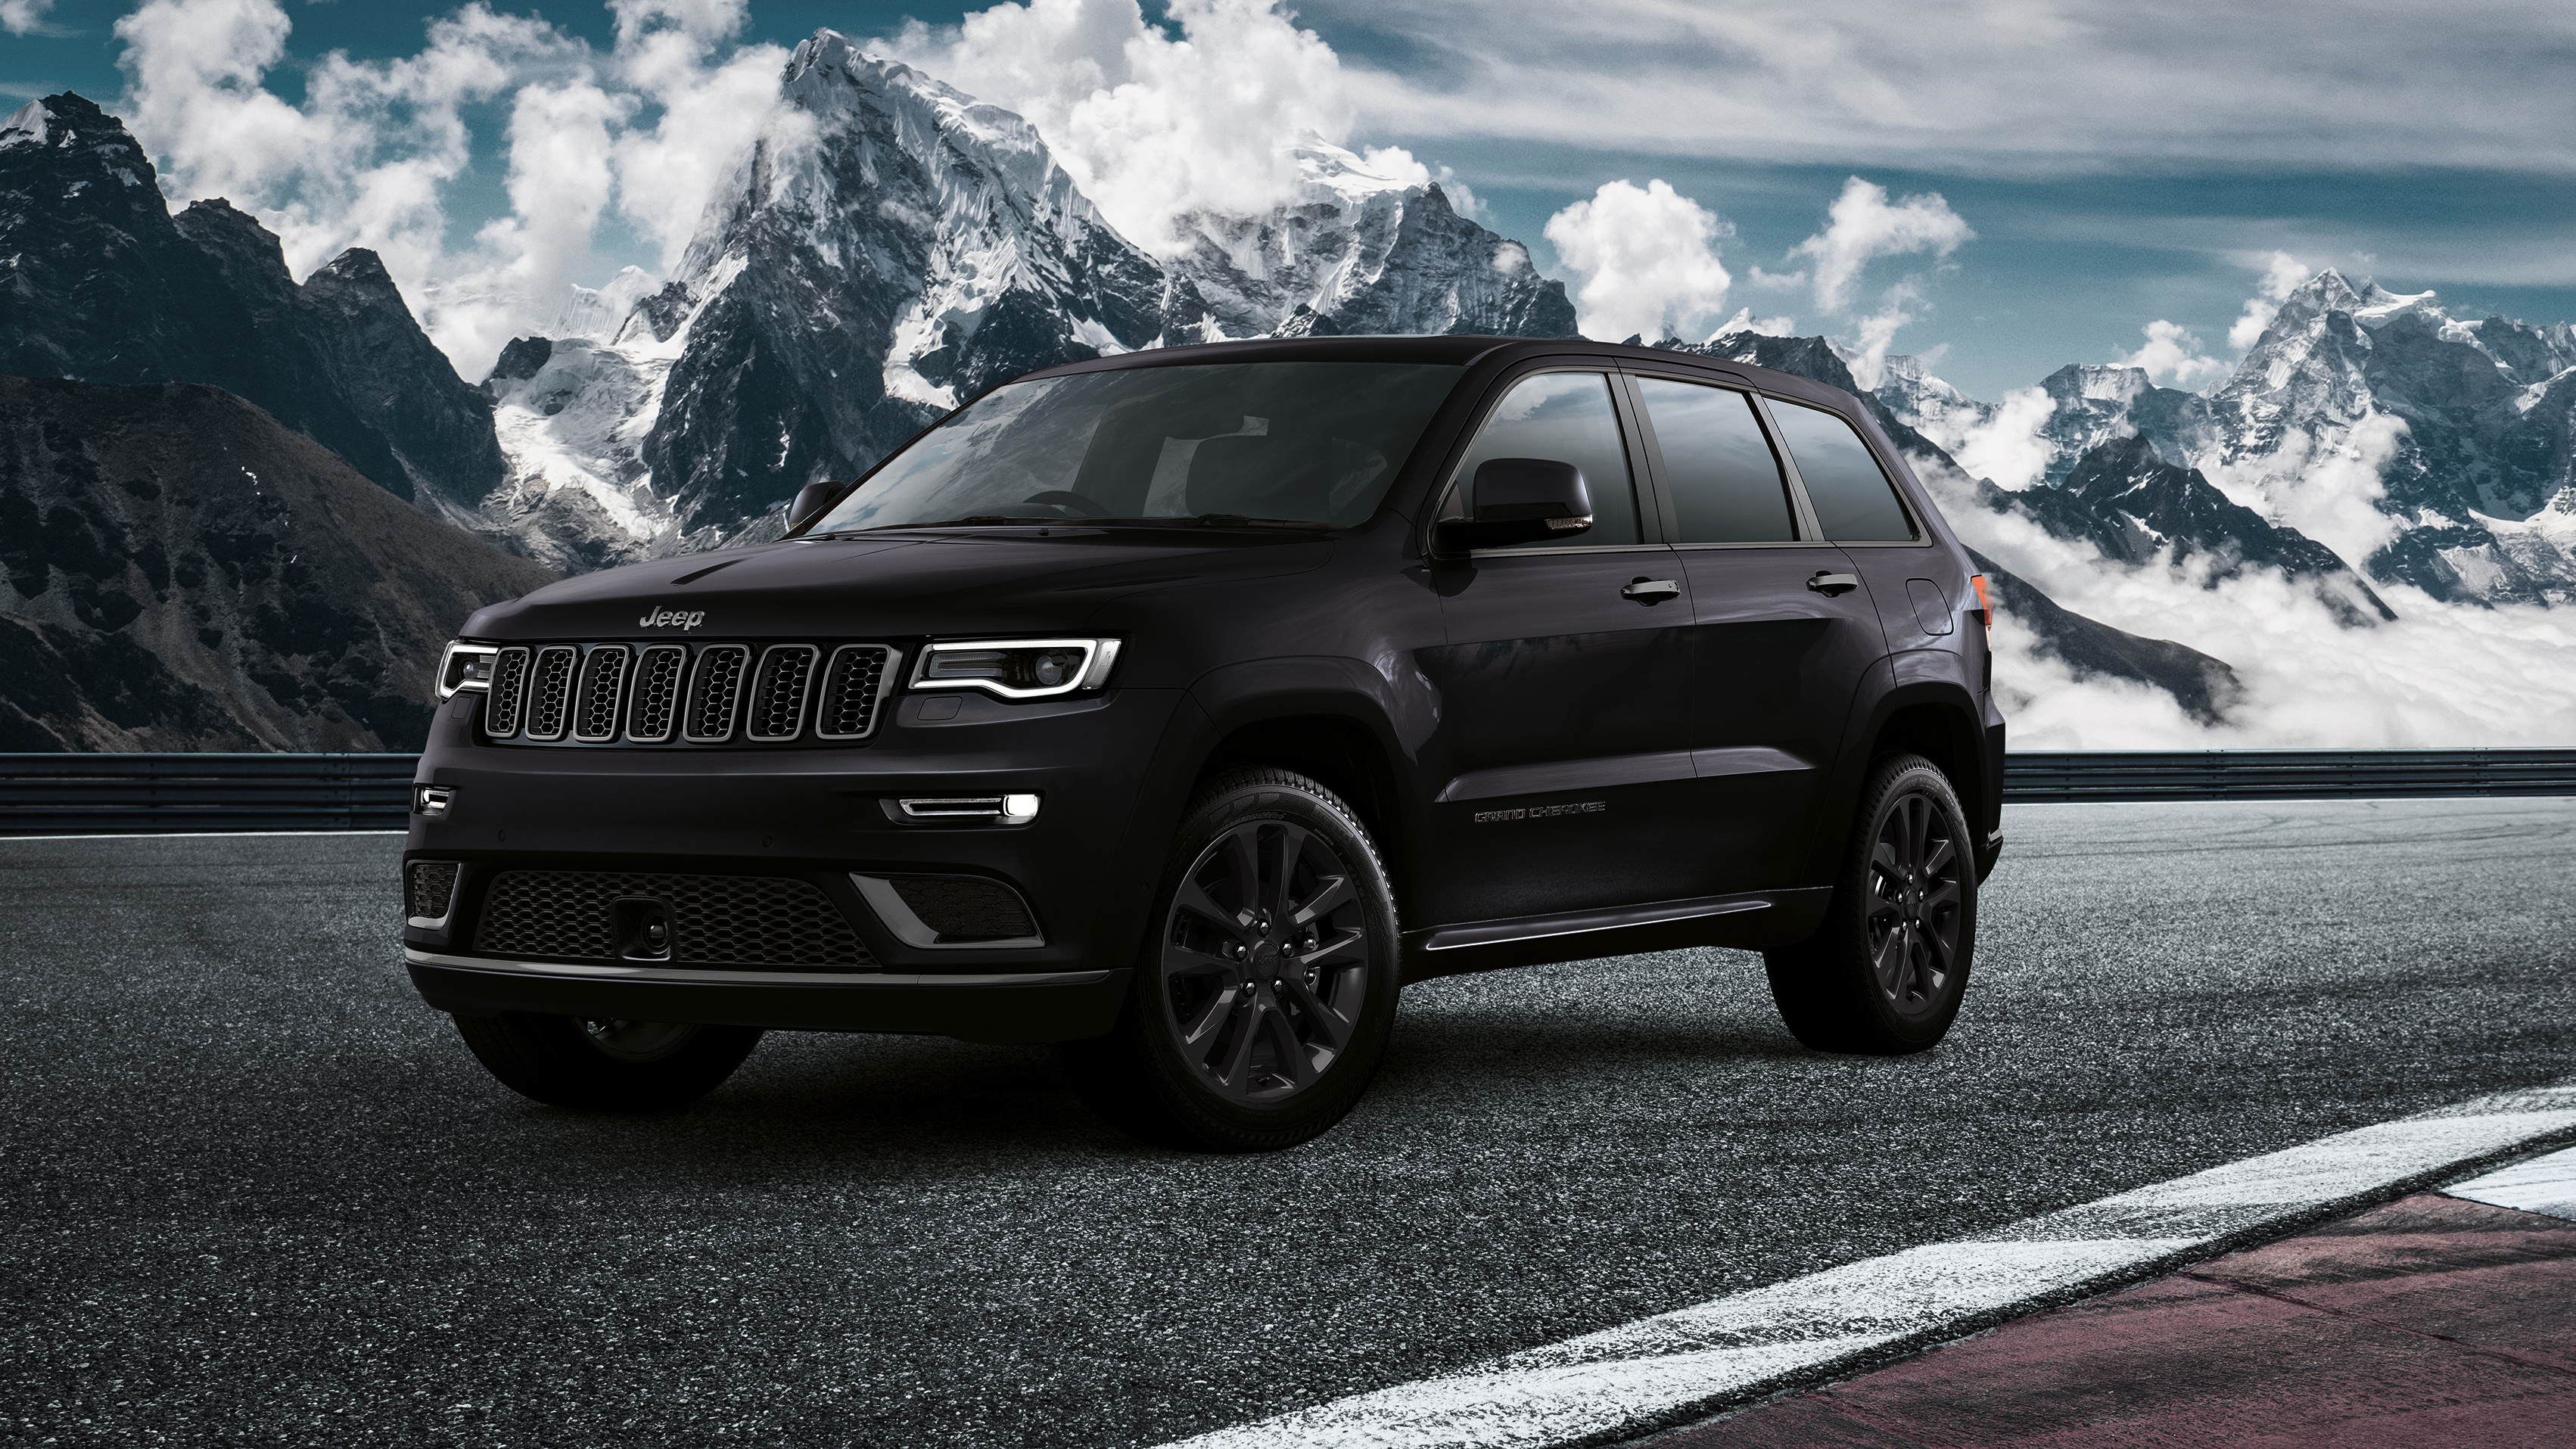 Grand Cherokee Srt 2017 >> 2019 Jeep Grand Cherokee S Wallpaper | HD Car Wallpapers | ID #9474